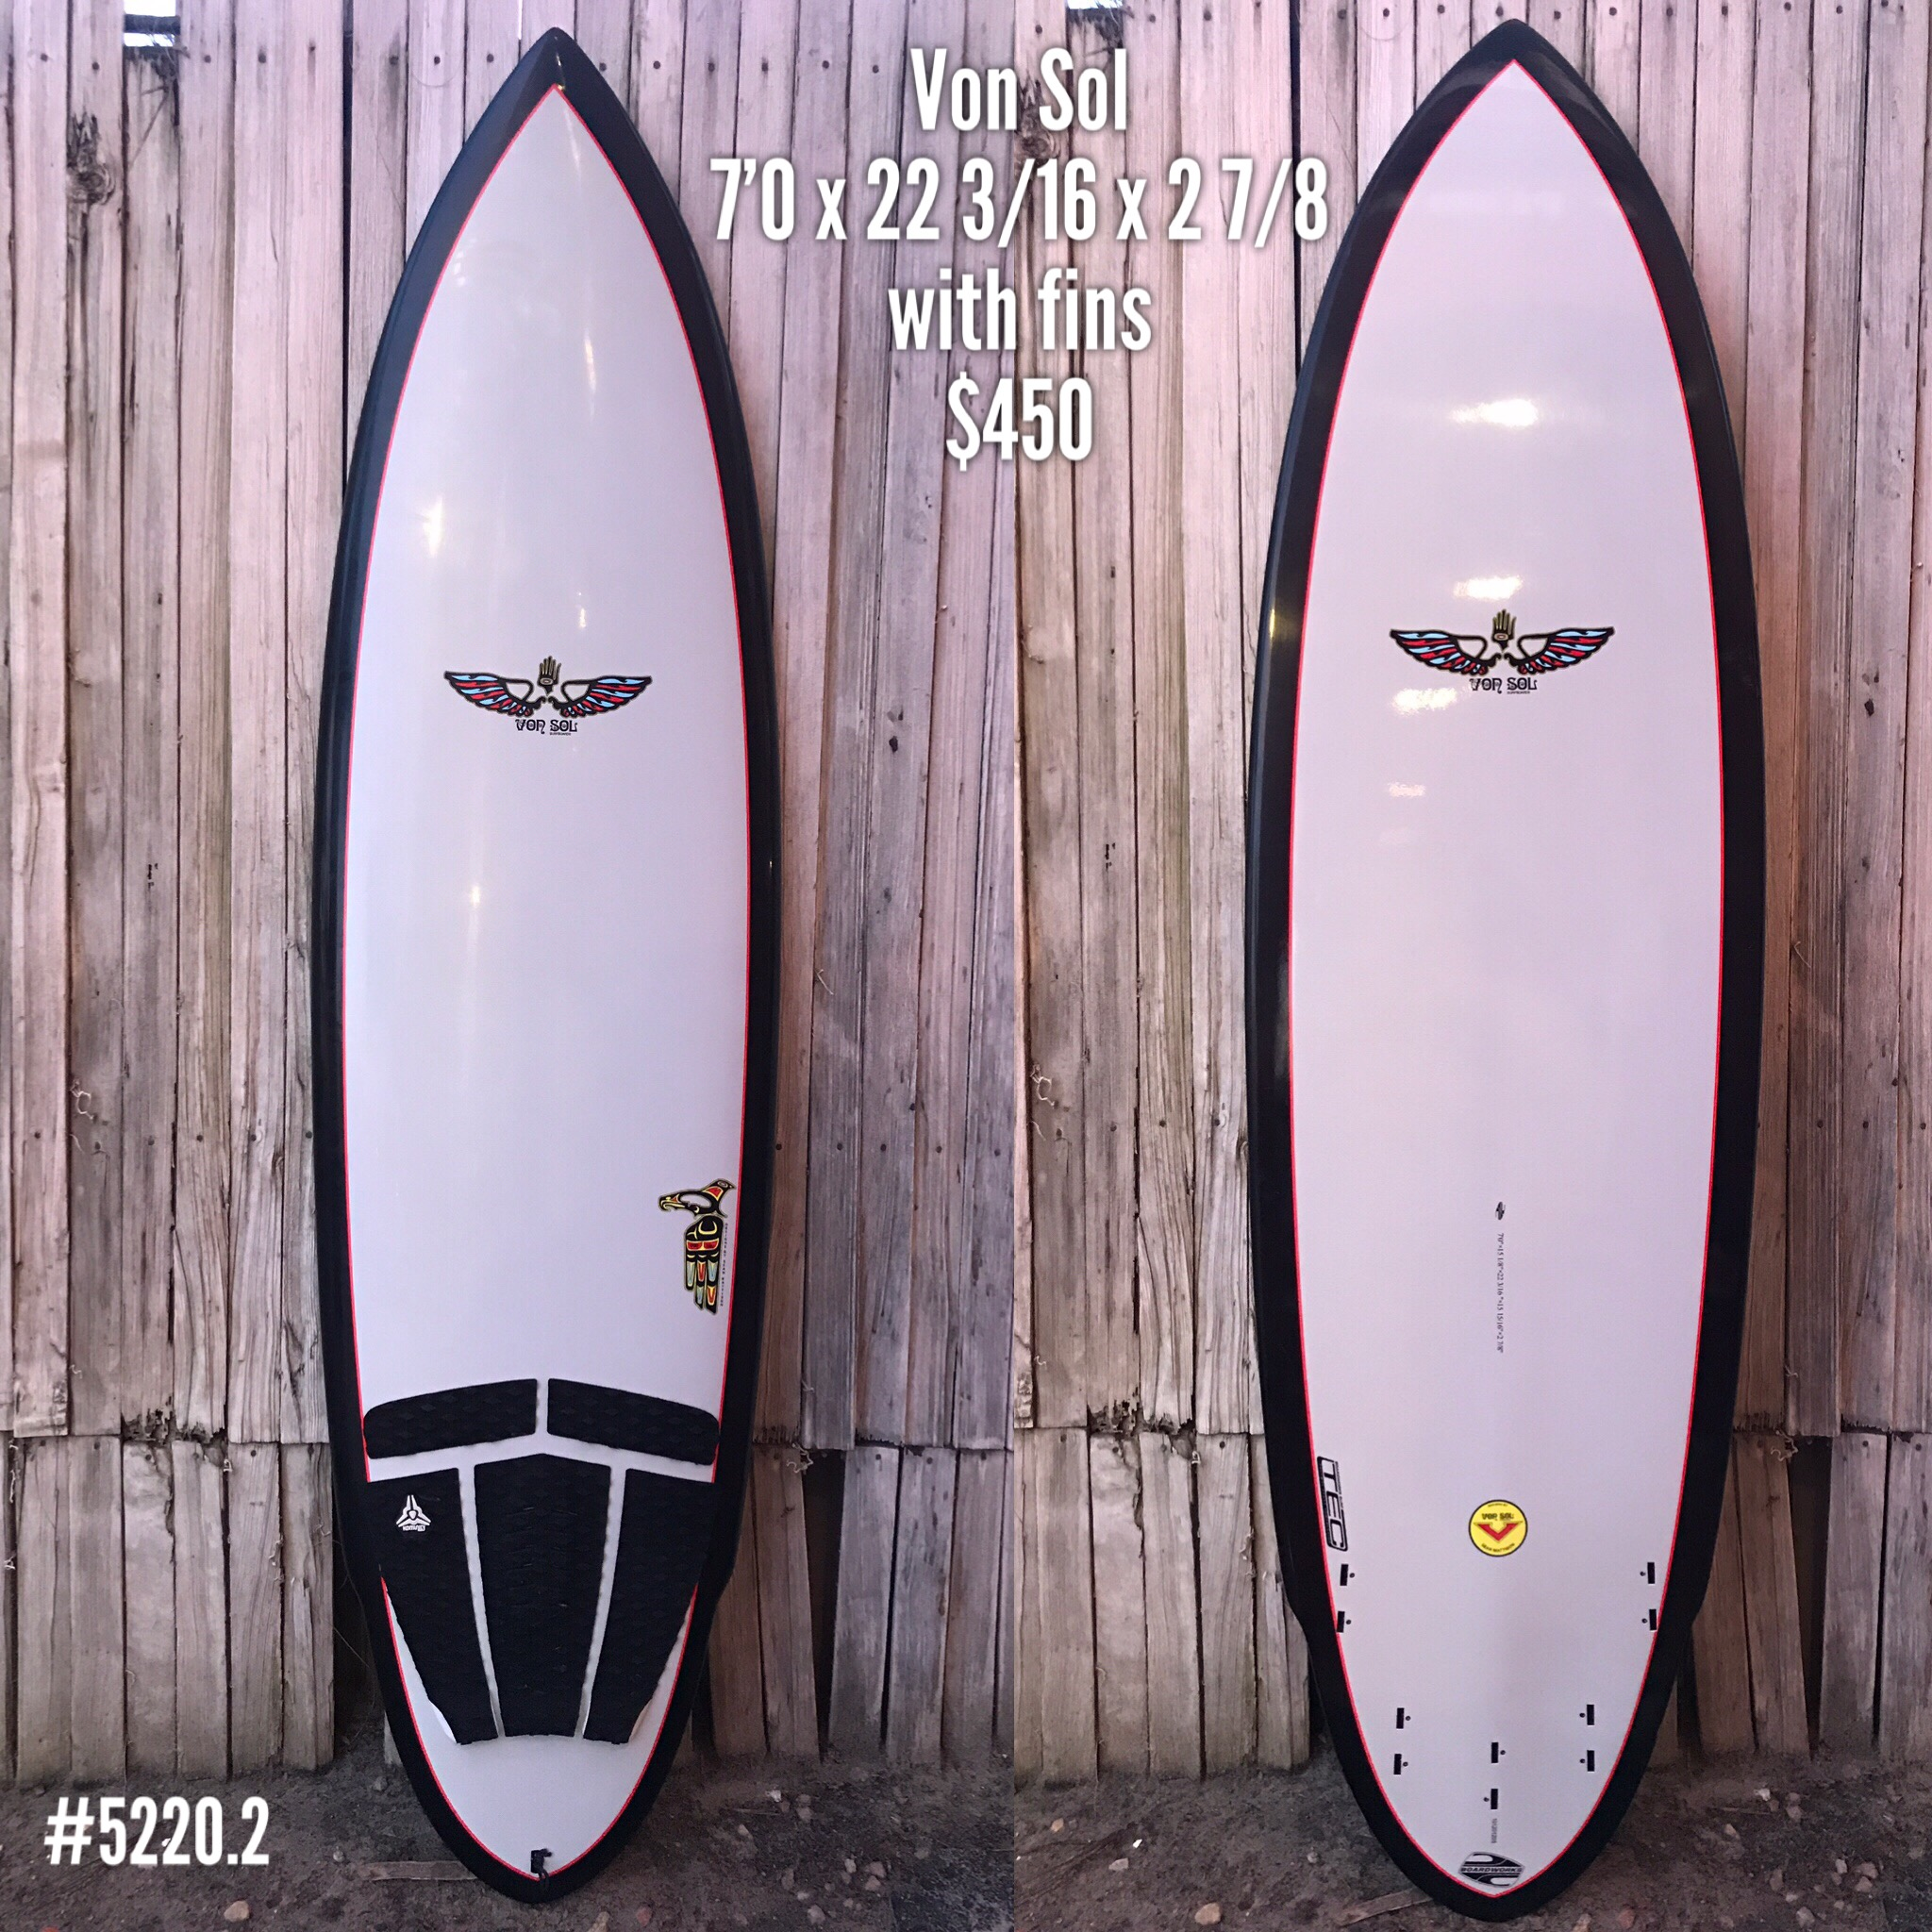 We don't see too many of these in the Racks. This 5 fin option Von Sol epoxy construction board is the ultimate ride. Catch waves easily and enjoy a fun and fast ride. These boards are super durable, and this one's in perfect condition. Make it your for $450 - includes fins!!